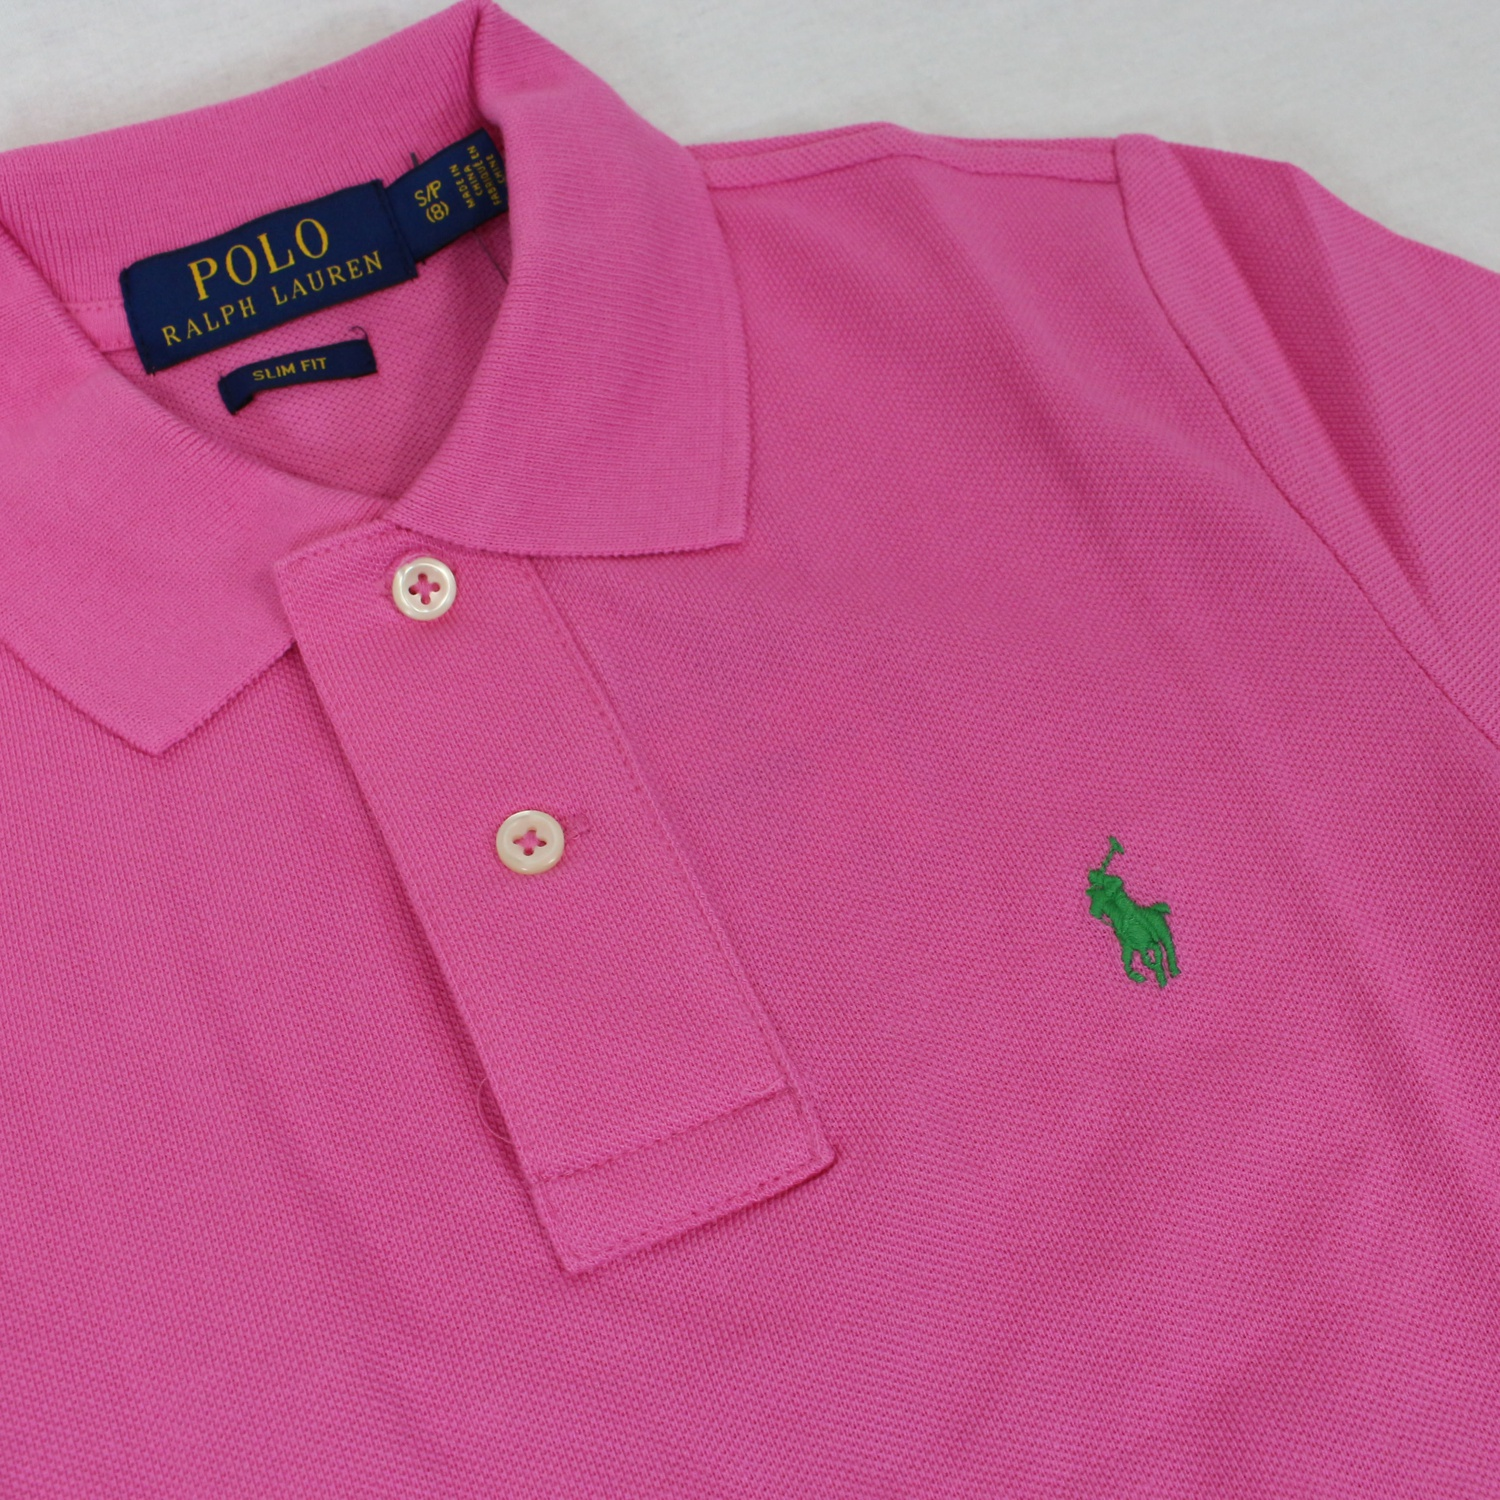 5bbb7cca7 Custom-fit polo shirt with logo Rose, Polo Ralph Lauren 323708857 ...